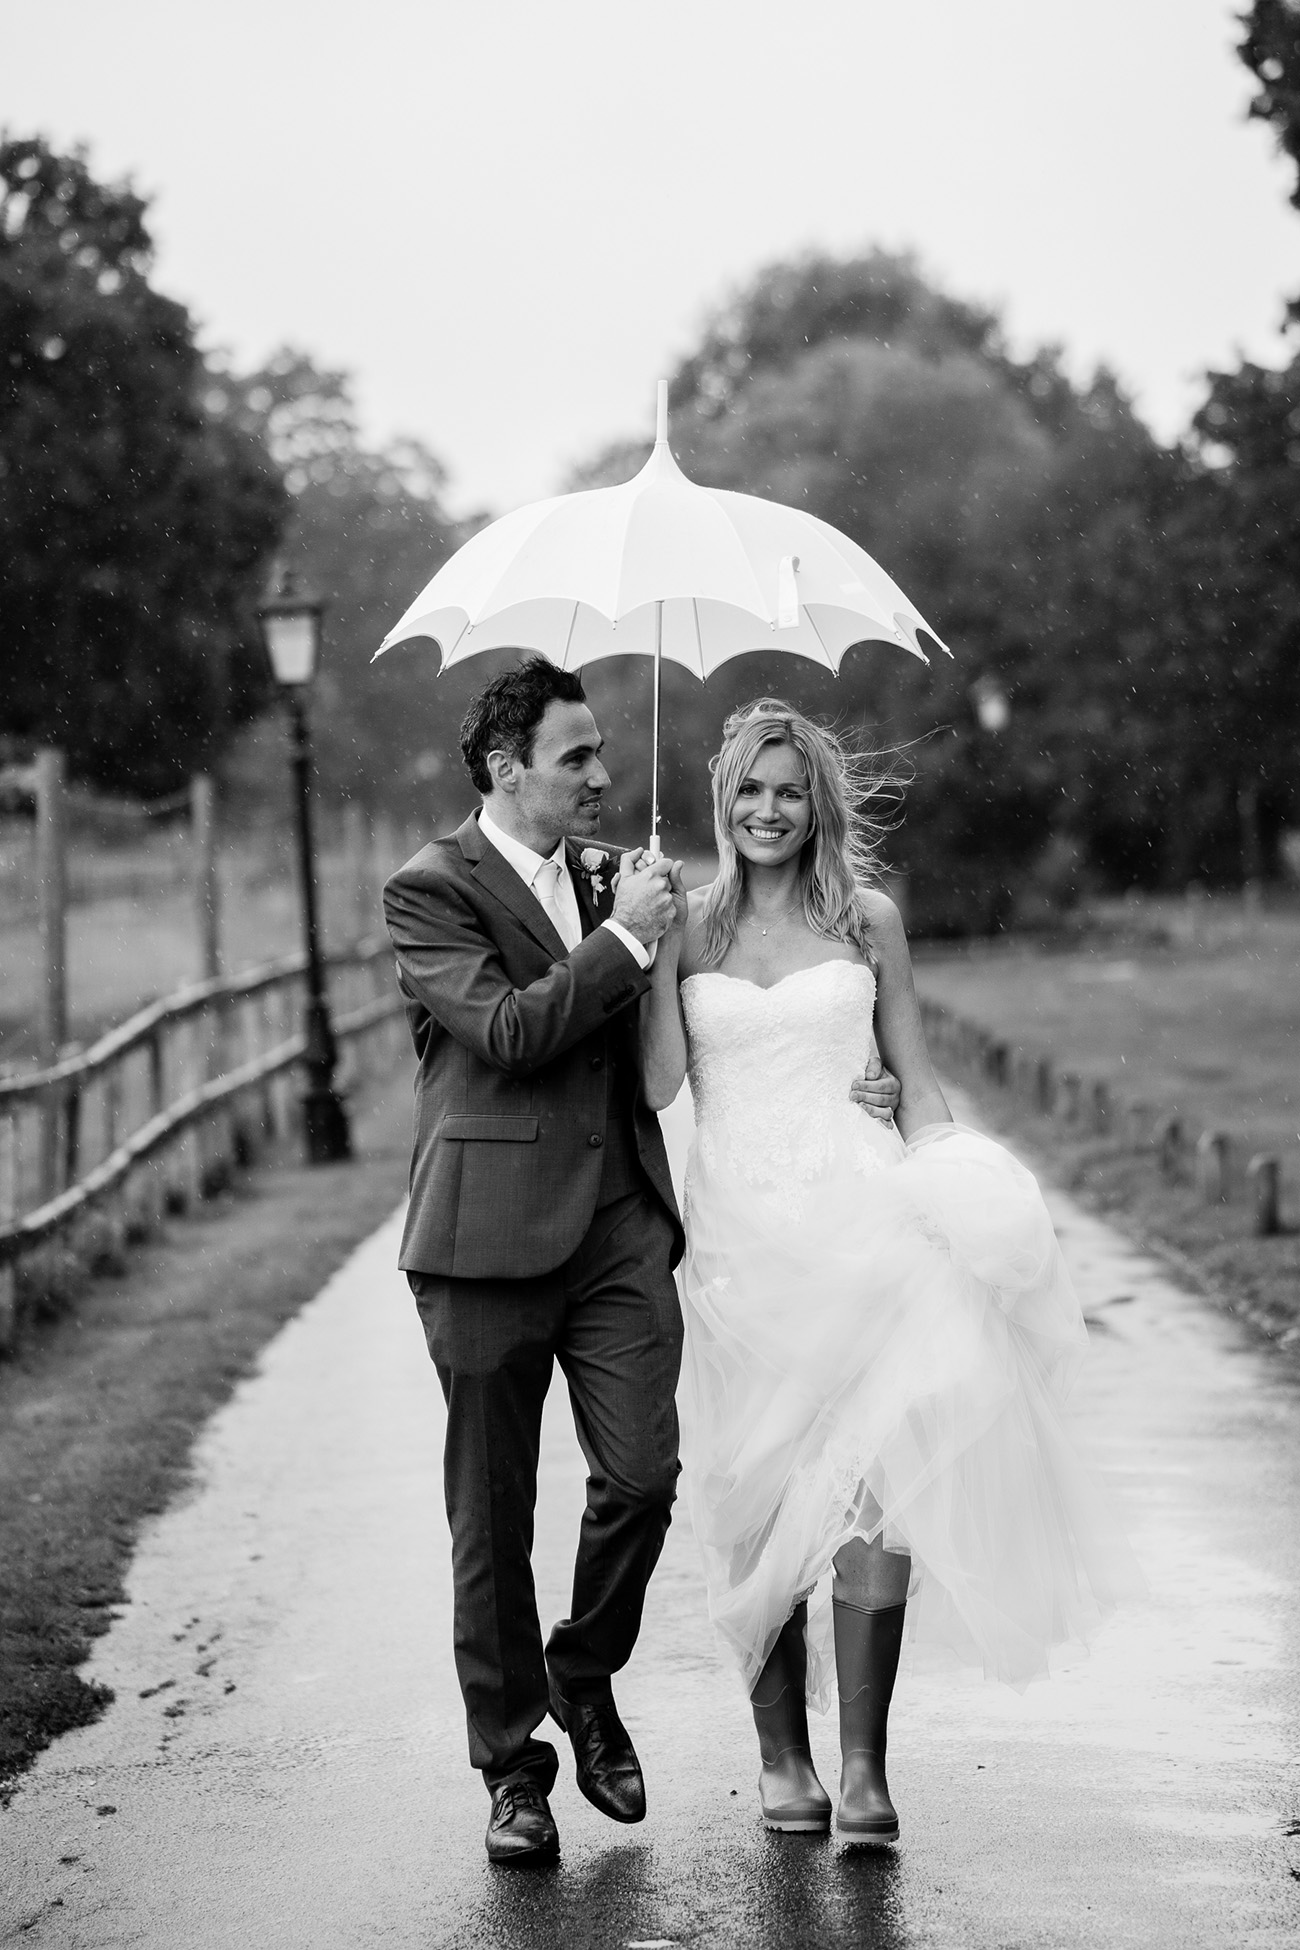 cute couple with umbrella rainy wedding